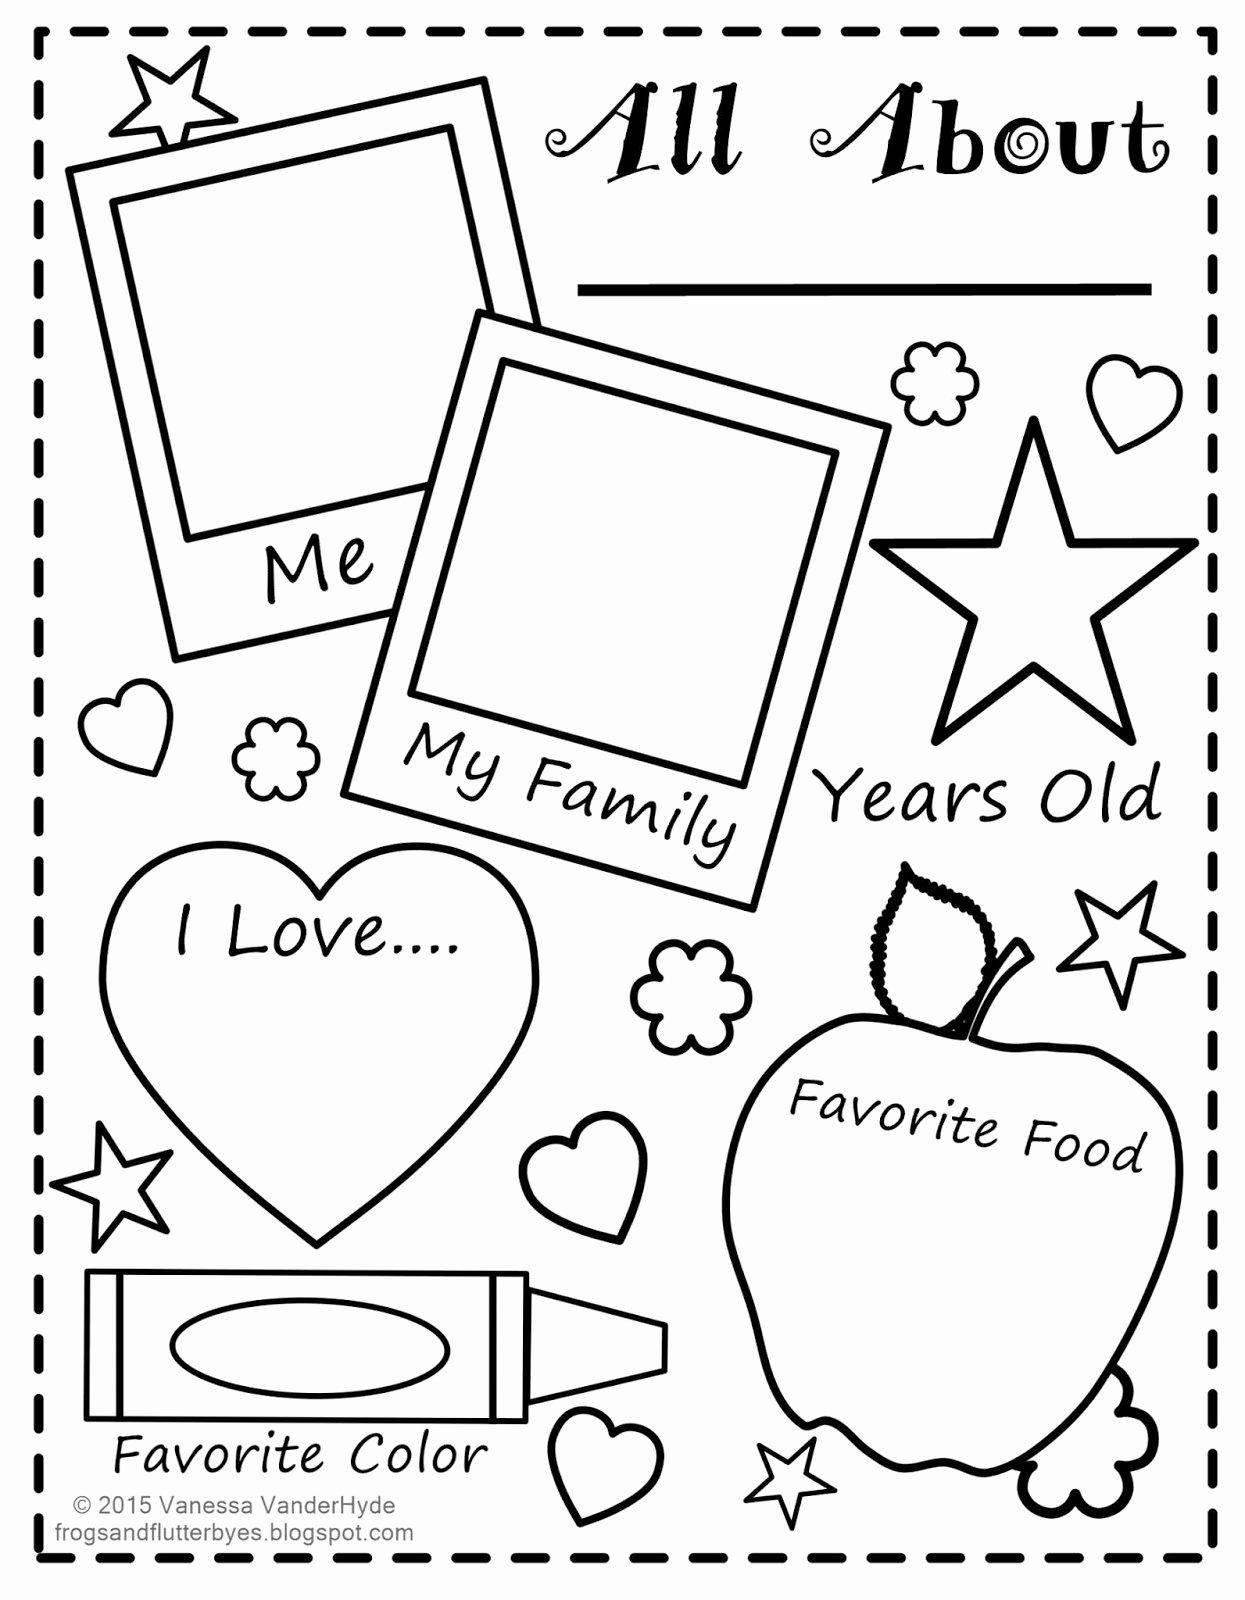 All About Me Worksheet Preschool Unique the Frogs and the Flutterbyes All About Me Free Printable